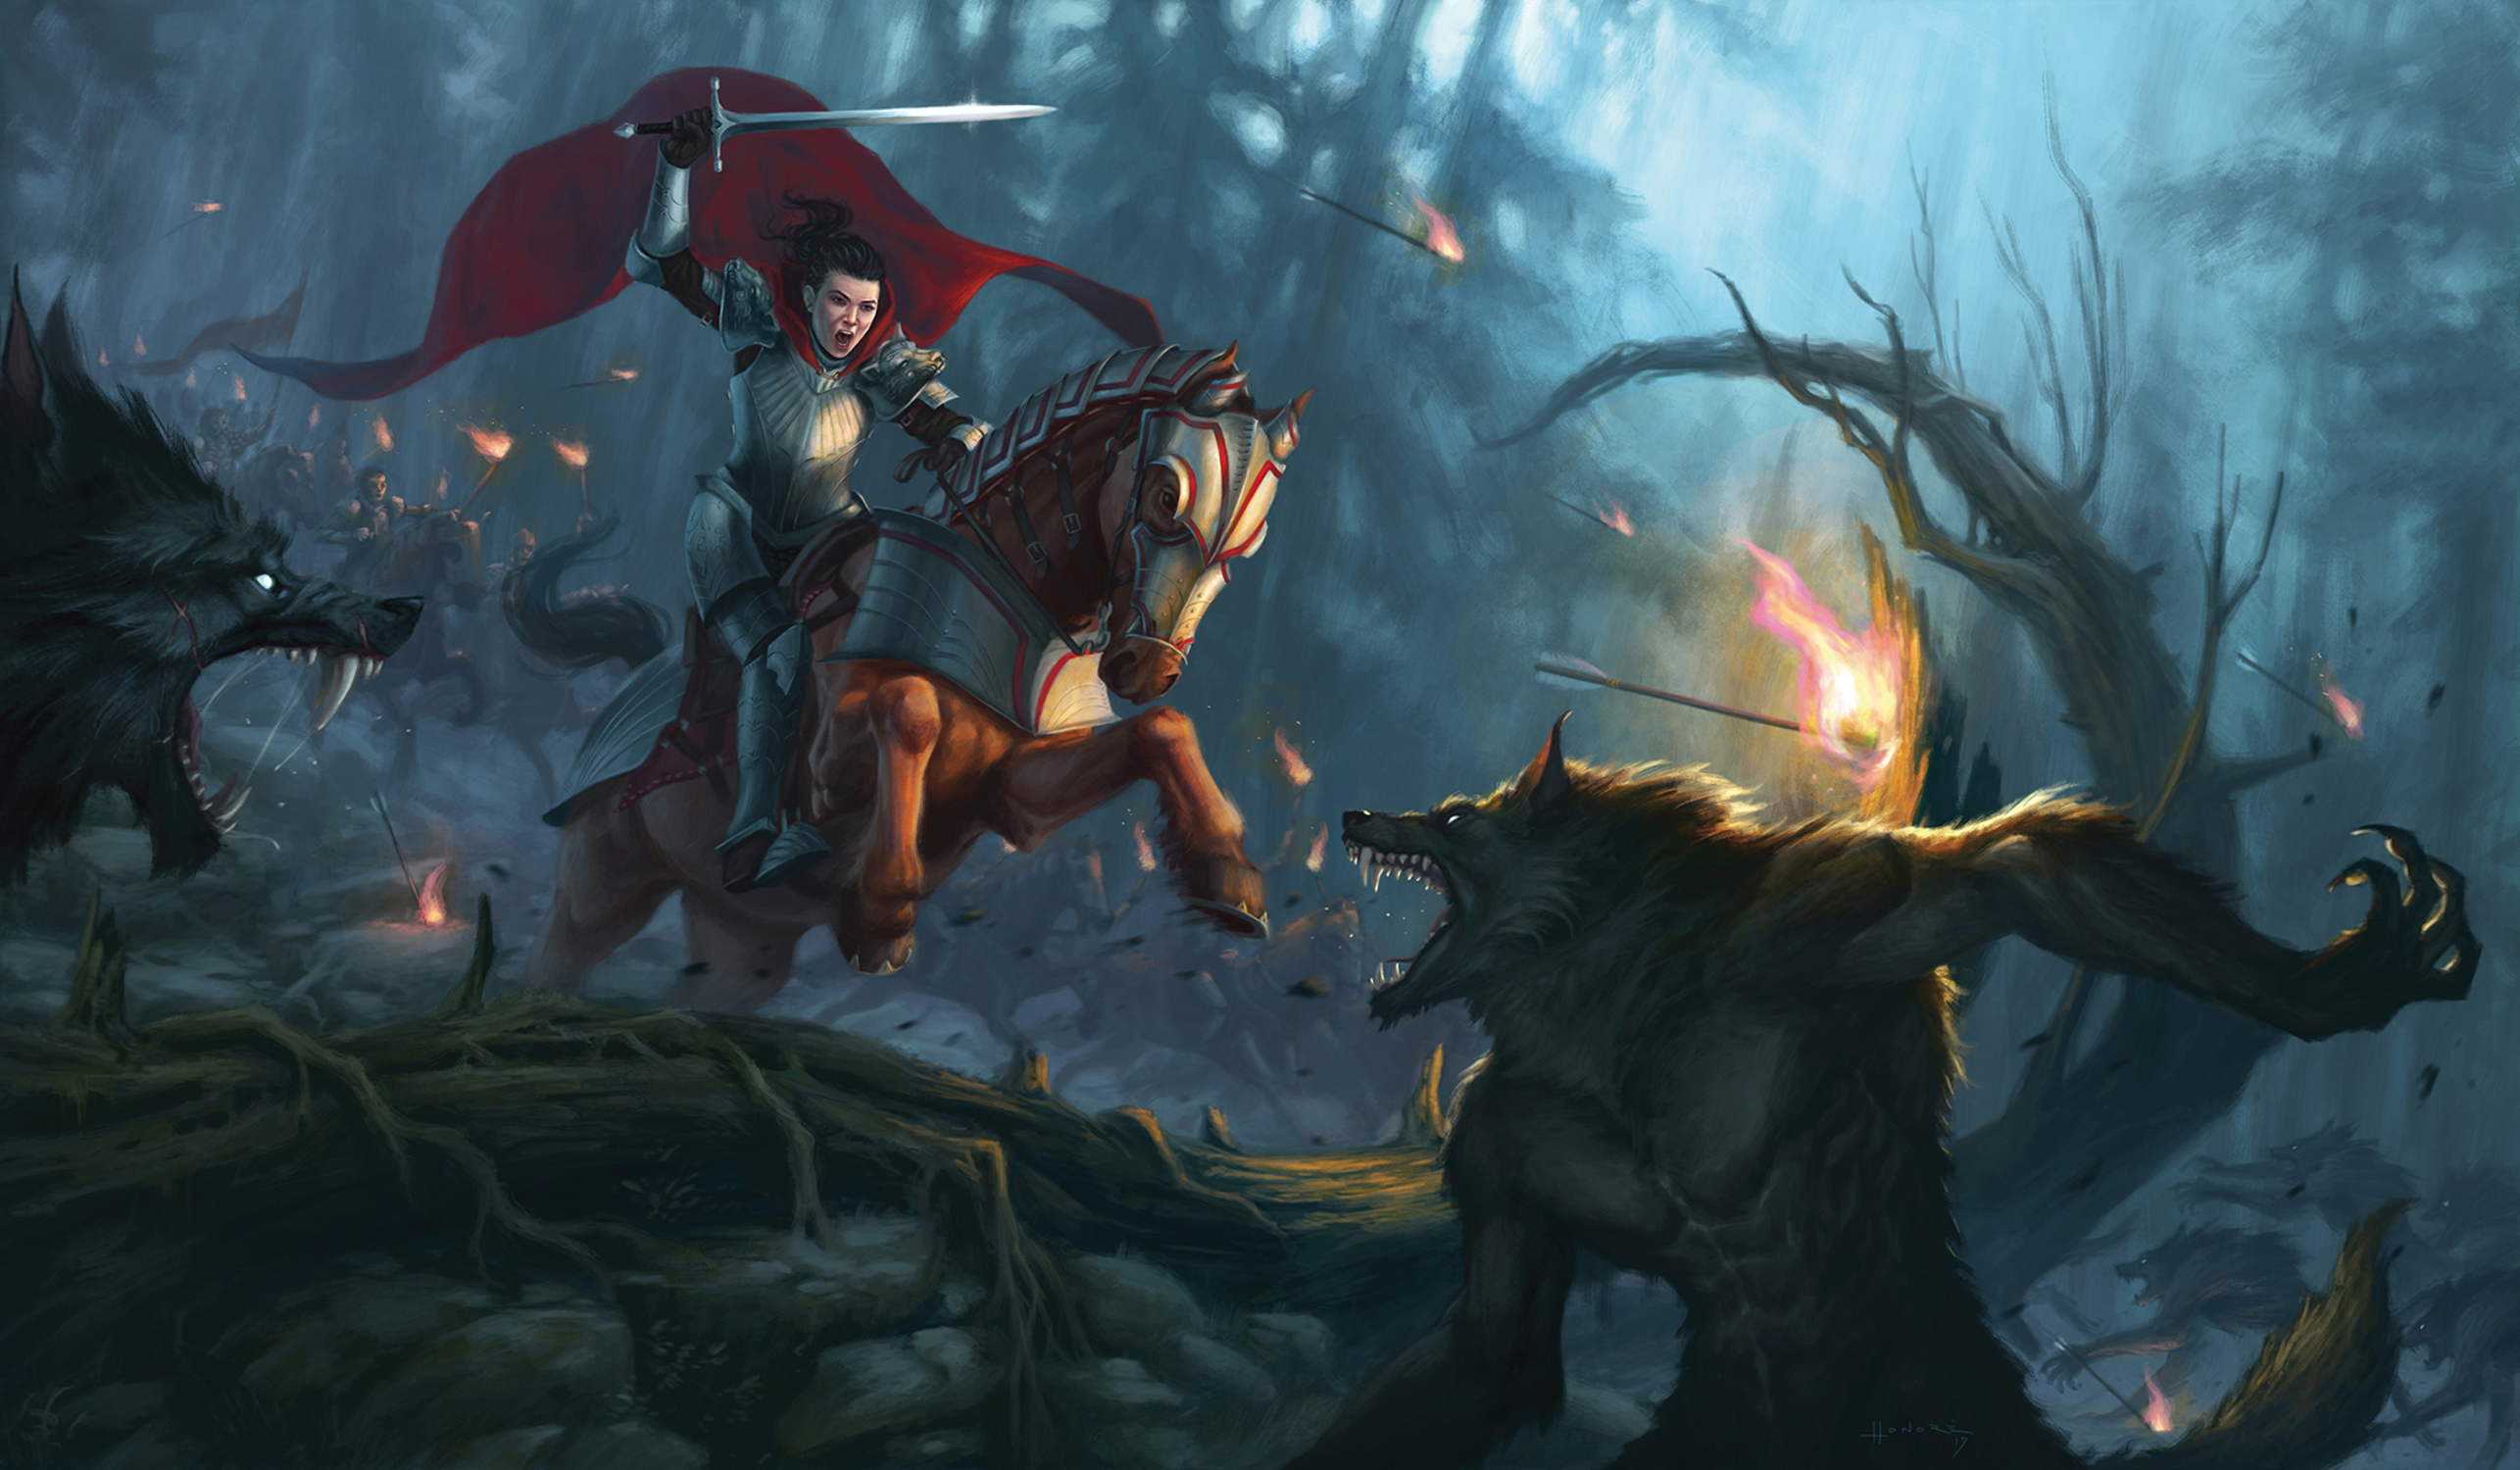 Red riding hood on her horse Artwork by Alexandre Honoré